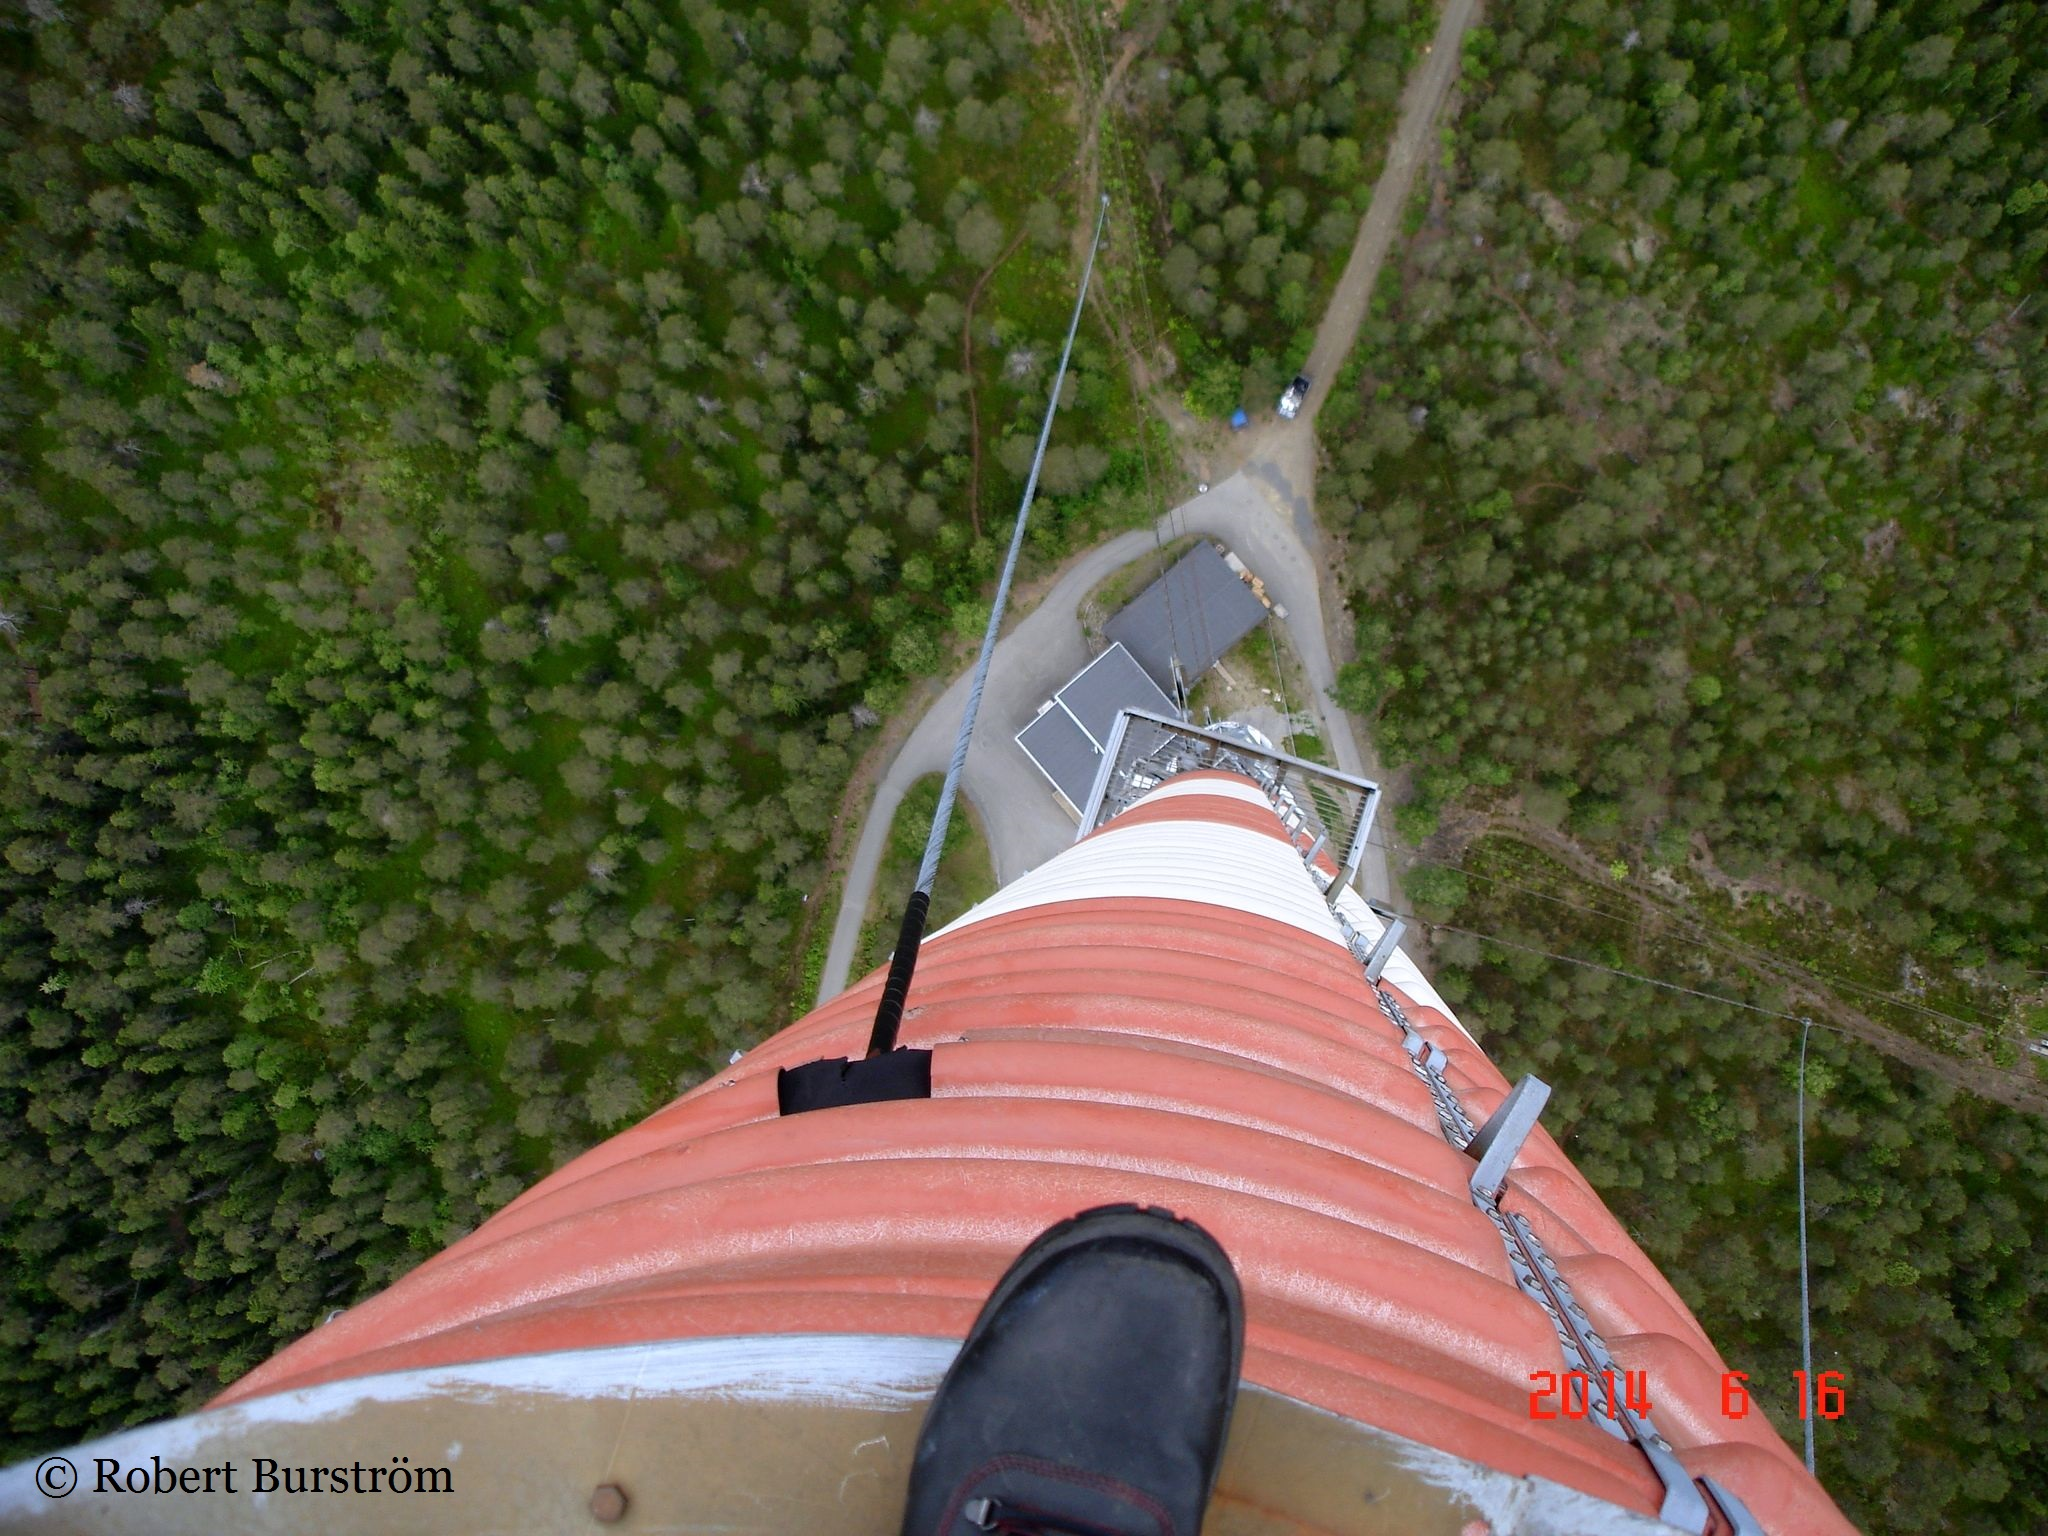 Top of the TV-tower